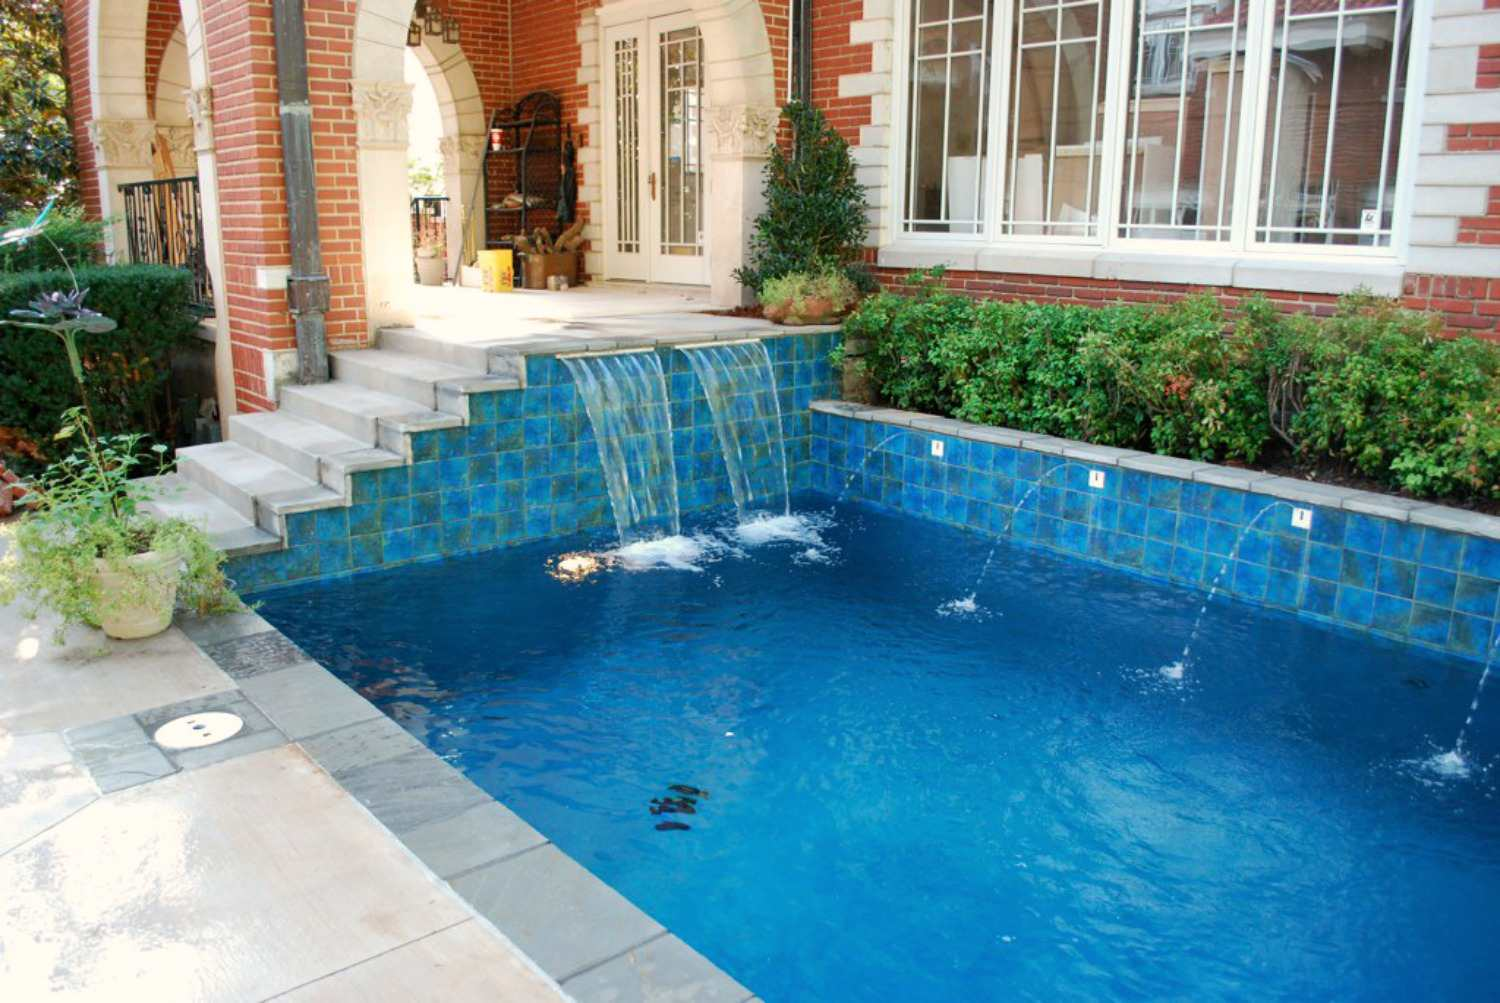 Pool with stairs and waterfall